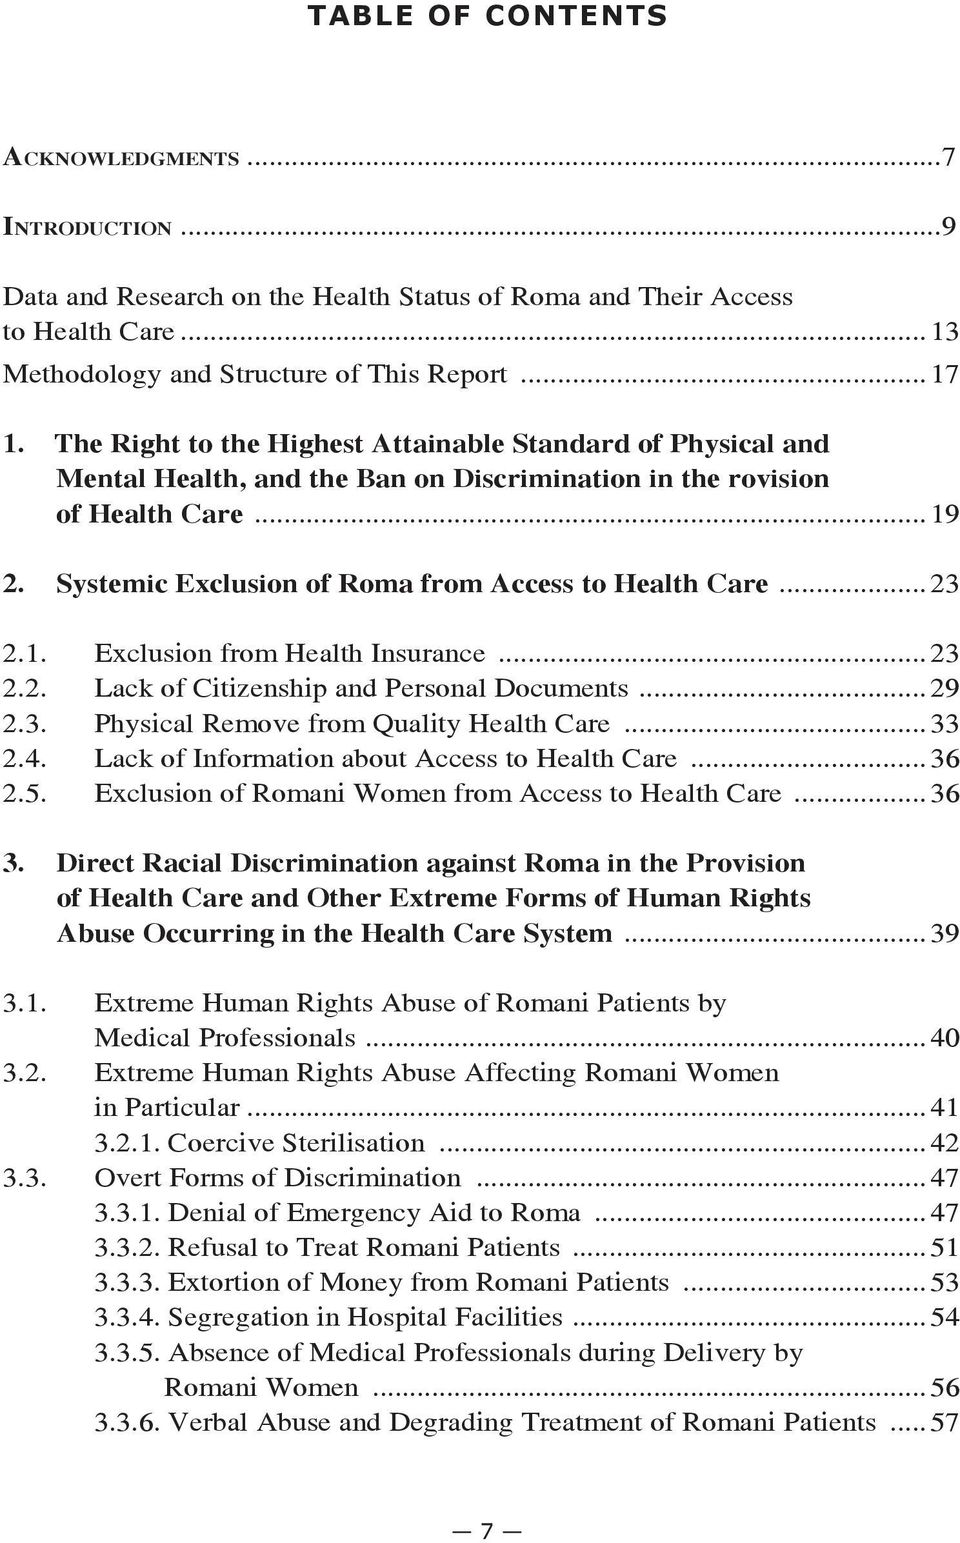 Systemic Exclusion of Roma from Access to Health Care...23 2.1. Exclusion from Health Insurance...23 2.2. Lack of Citizenship and Personal Documents...29 2.3. Physical Remove from Quality Health Care.